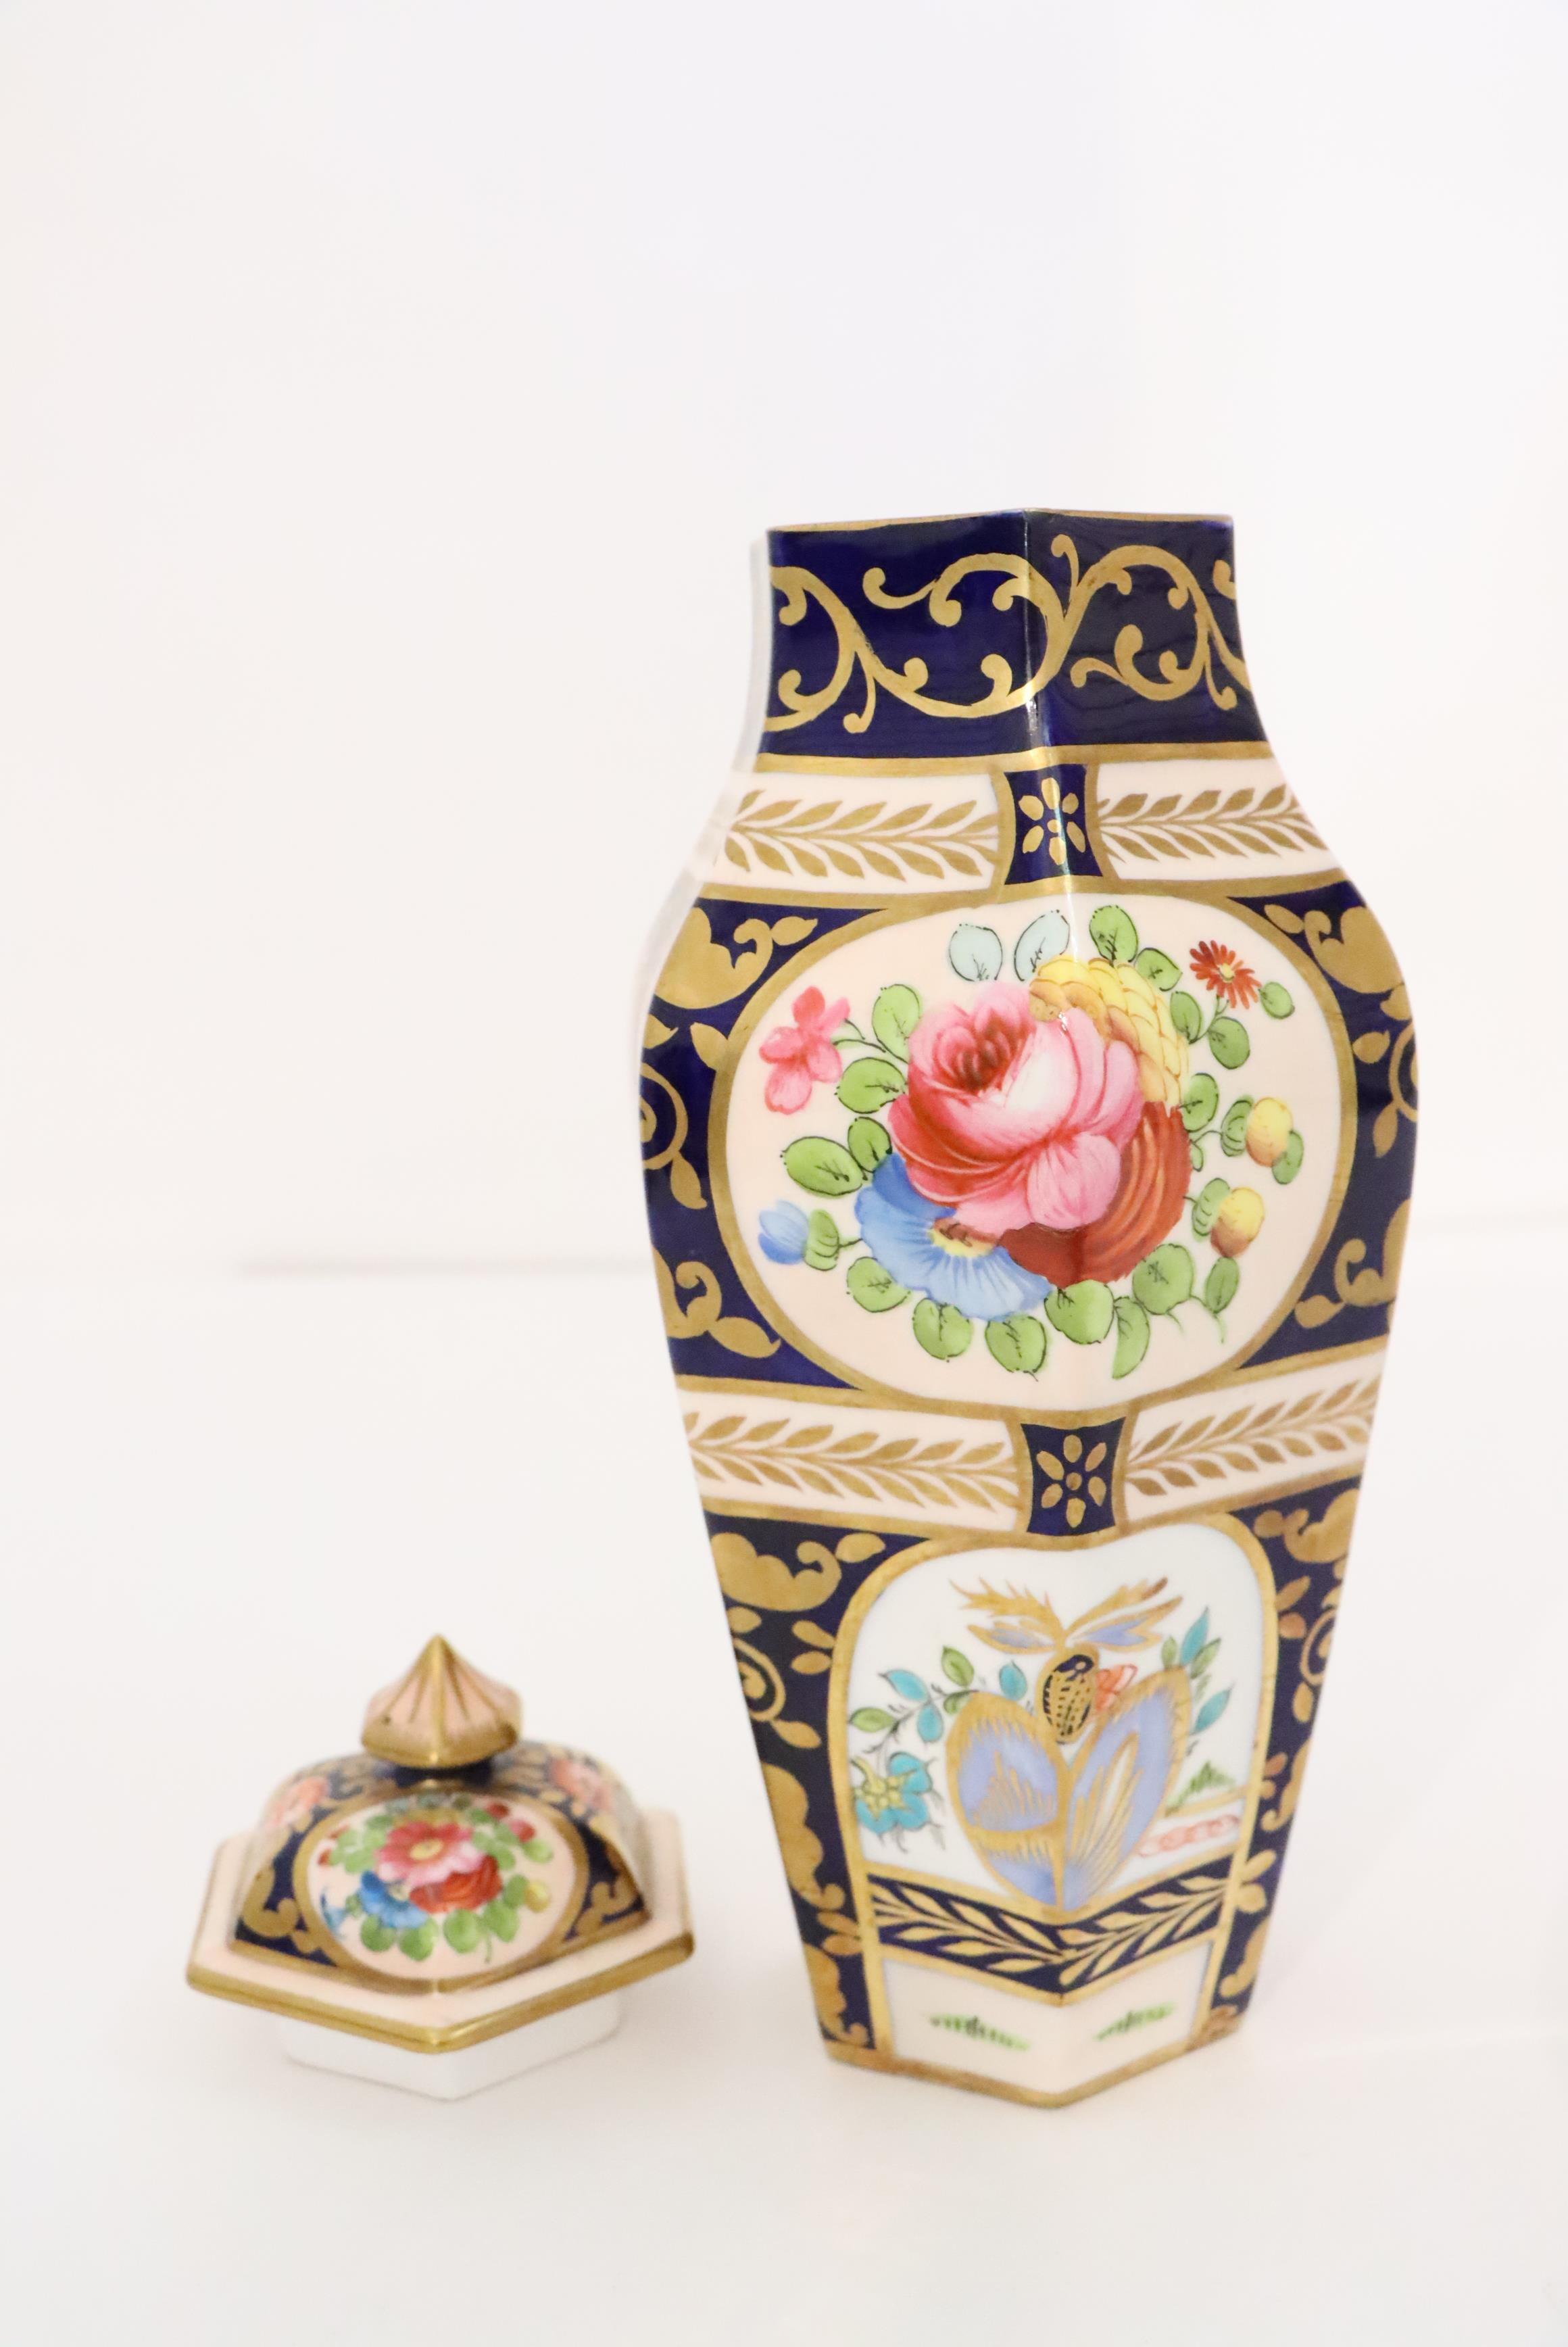 English Crown Staffordshire Covered Vase - Image 2 of 3